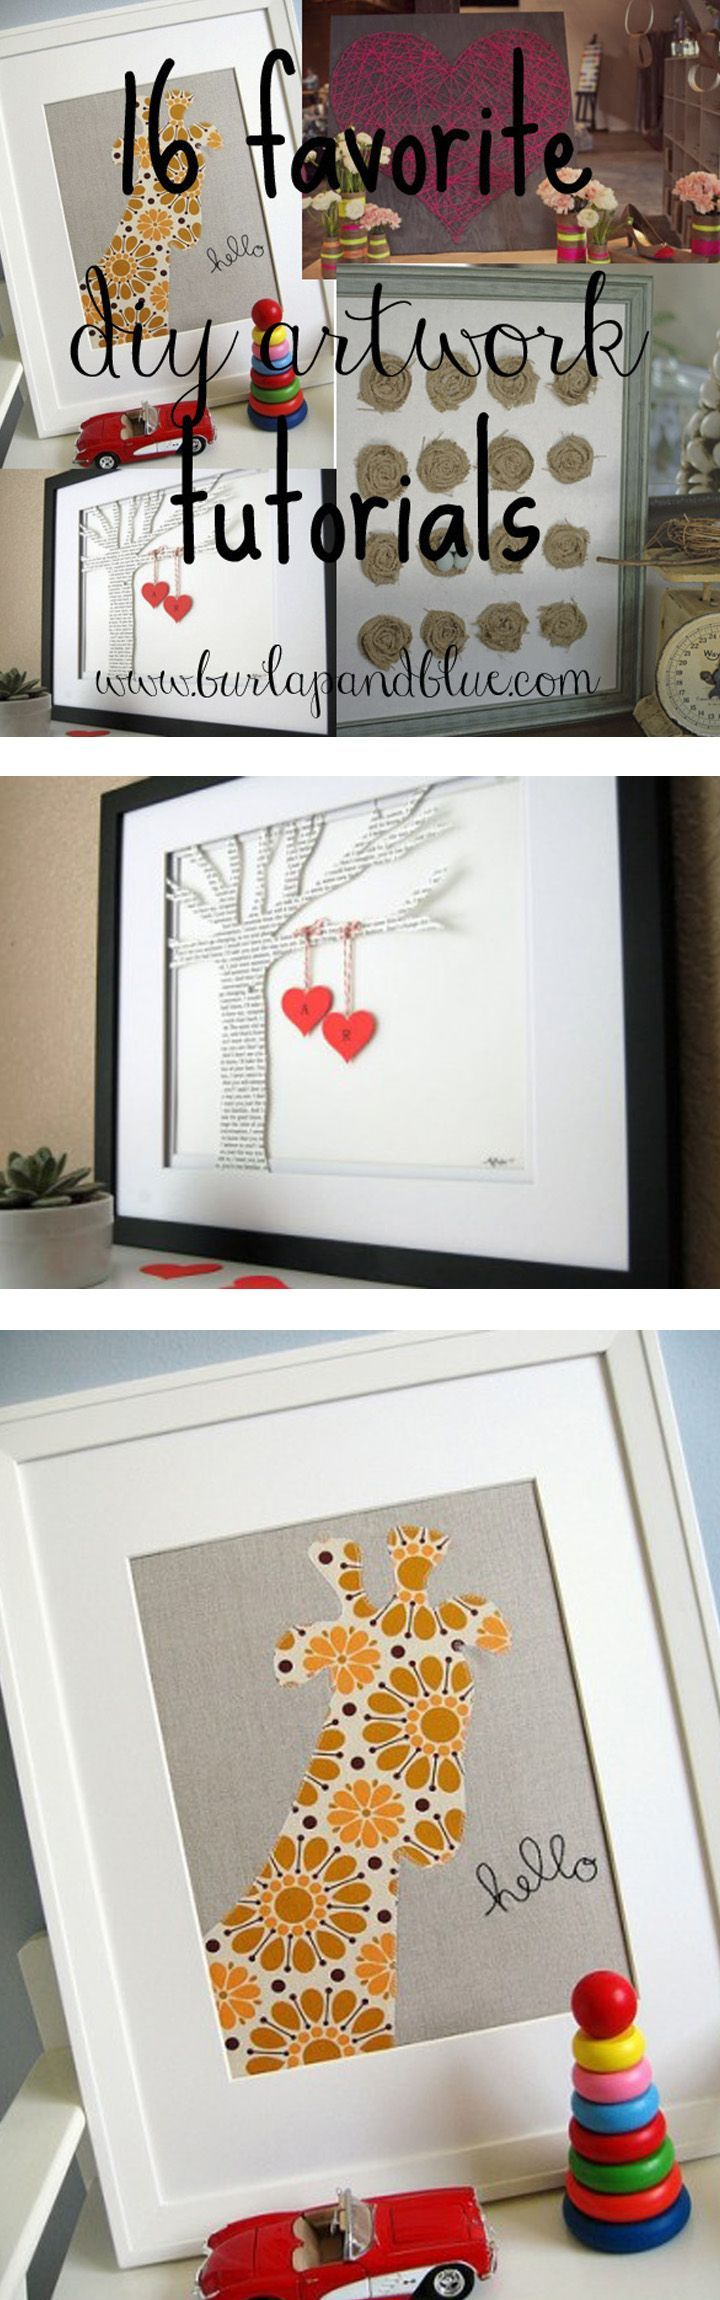 Favorite DIY Artwork Tutorials! Your empty walls need these ideas!